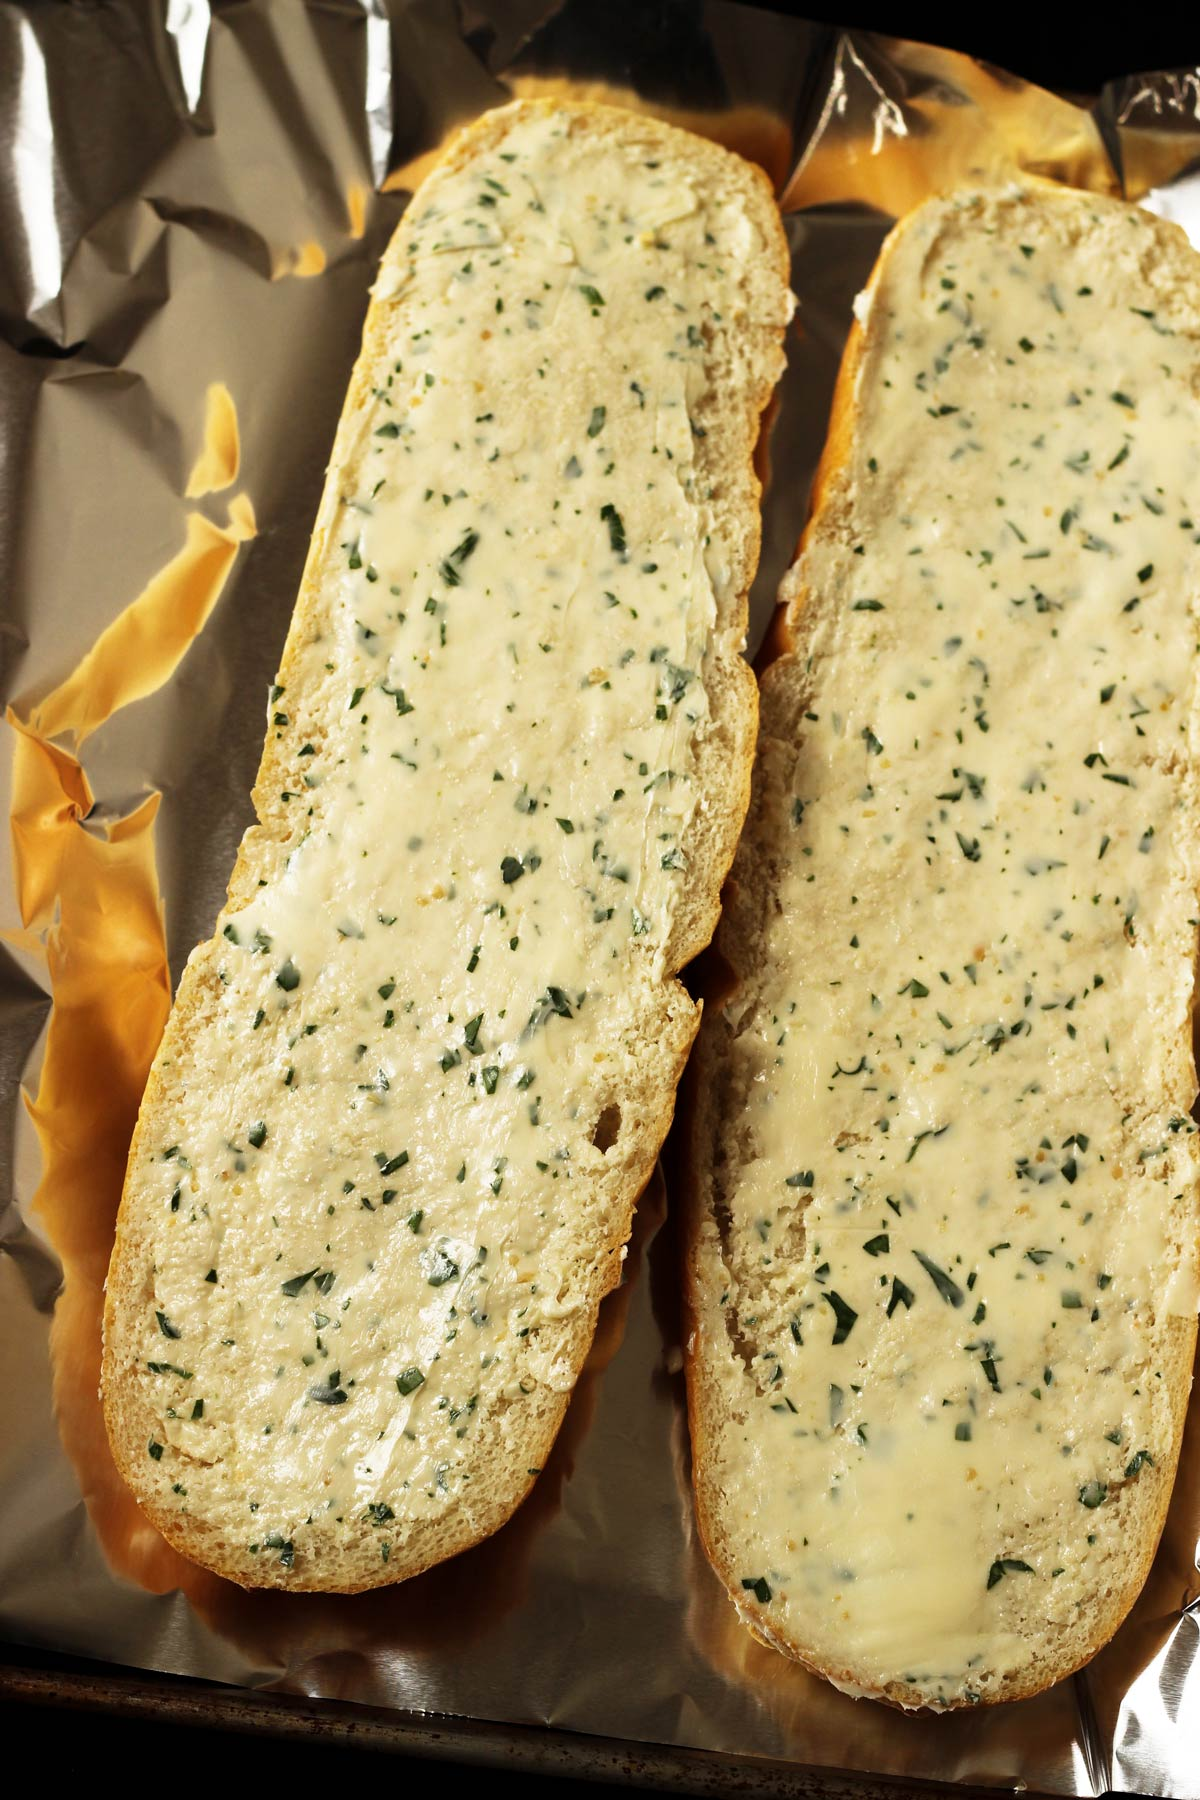 loaf halves spread with garlic butter and placed on aluminum foil.